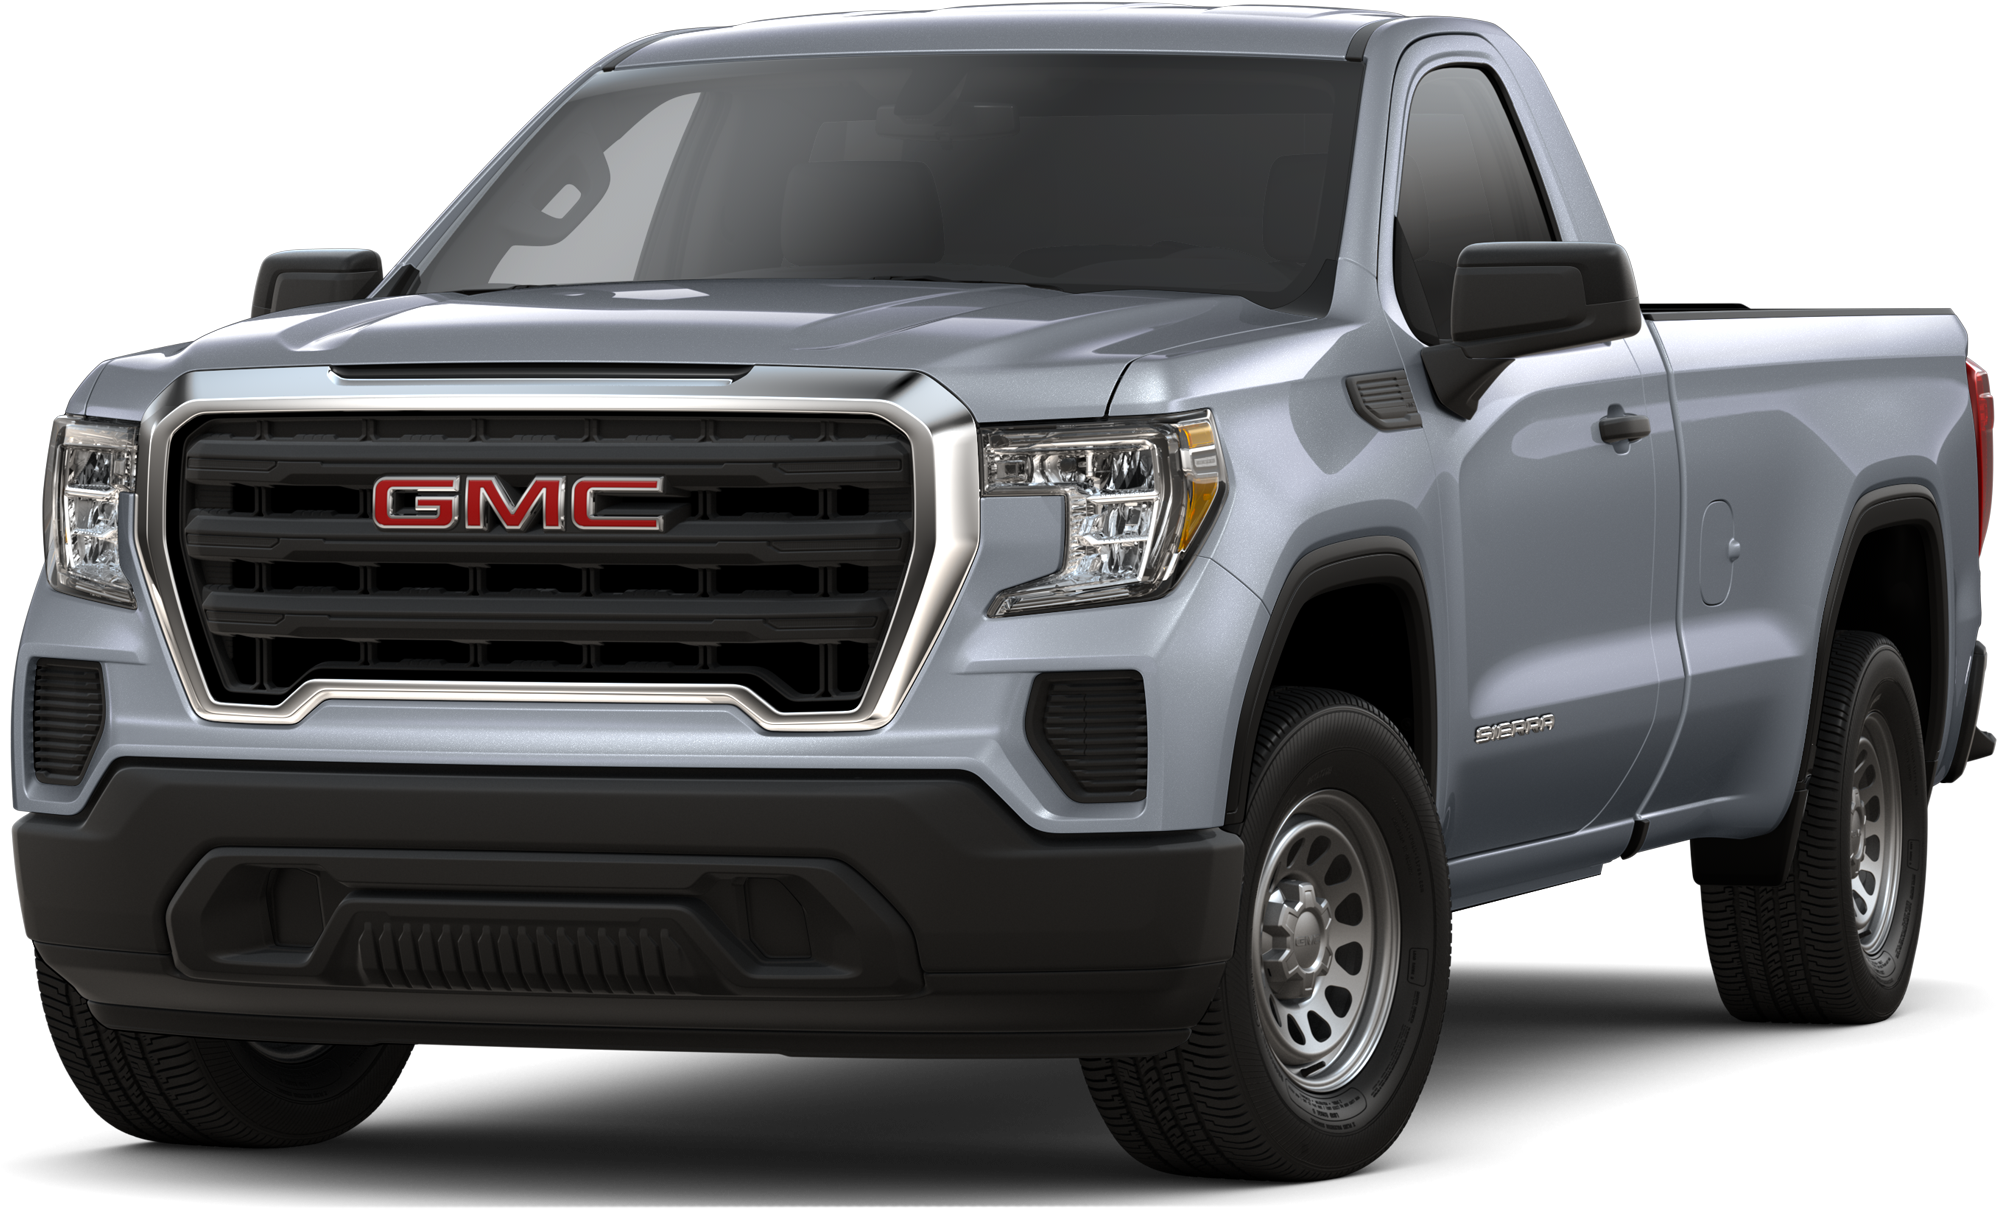 2019 GMC Sierra 1500 Incentives, Specials & Offers In